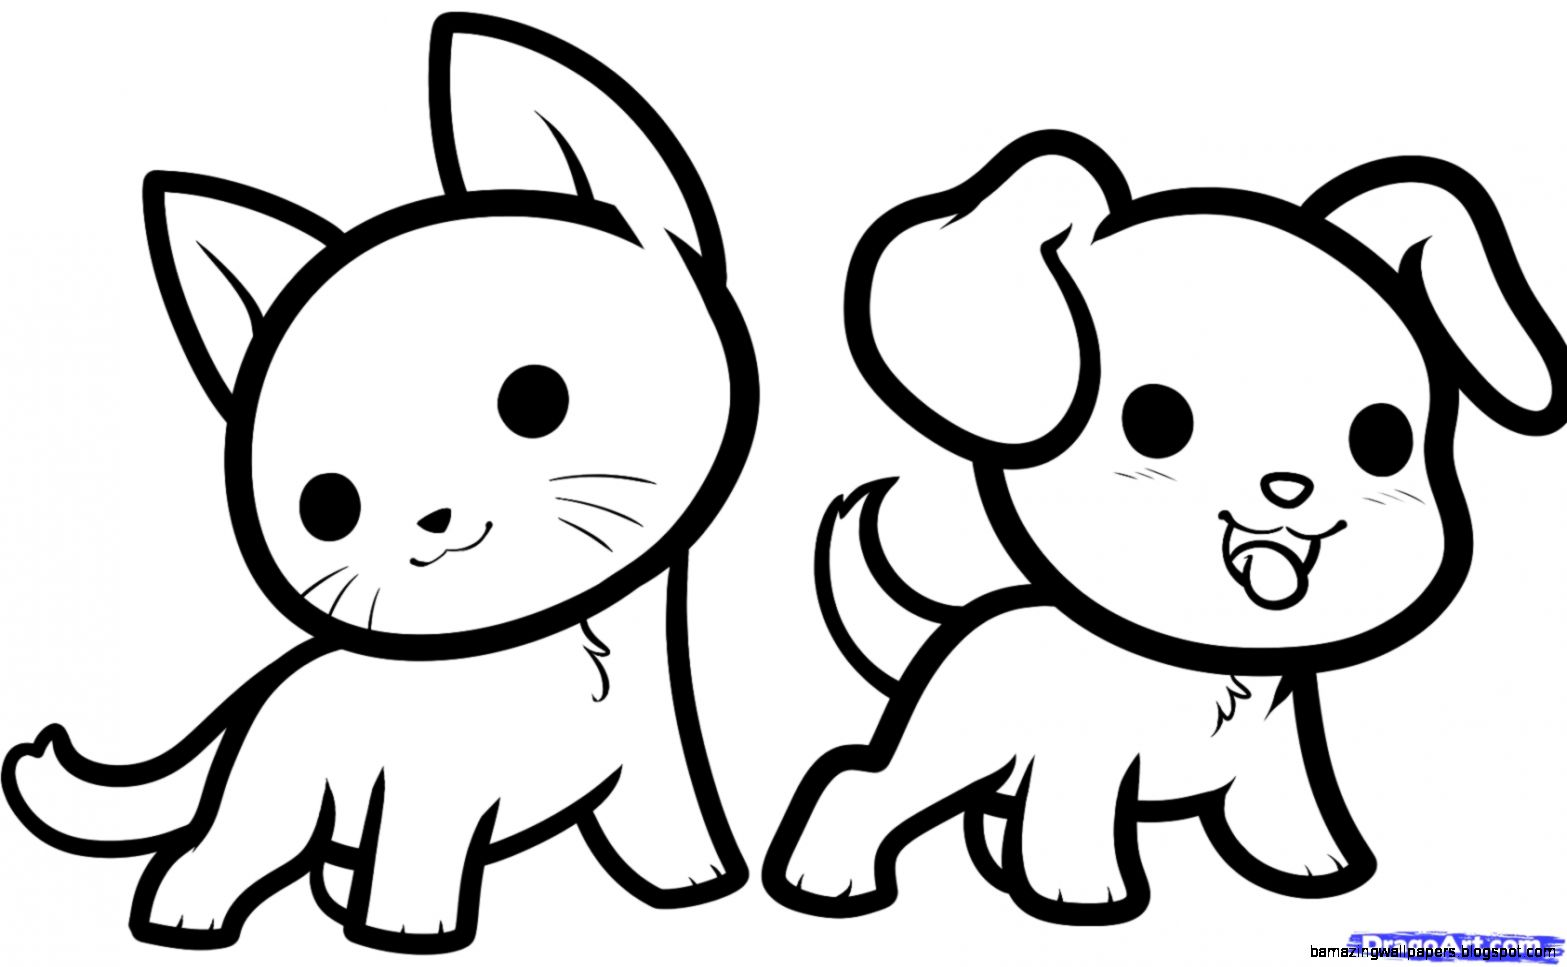 small printable pictures of animals cute baby animal coloring pages printable food ideas printable pictures of small animals